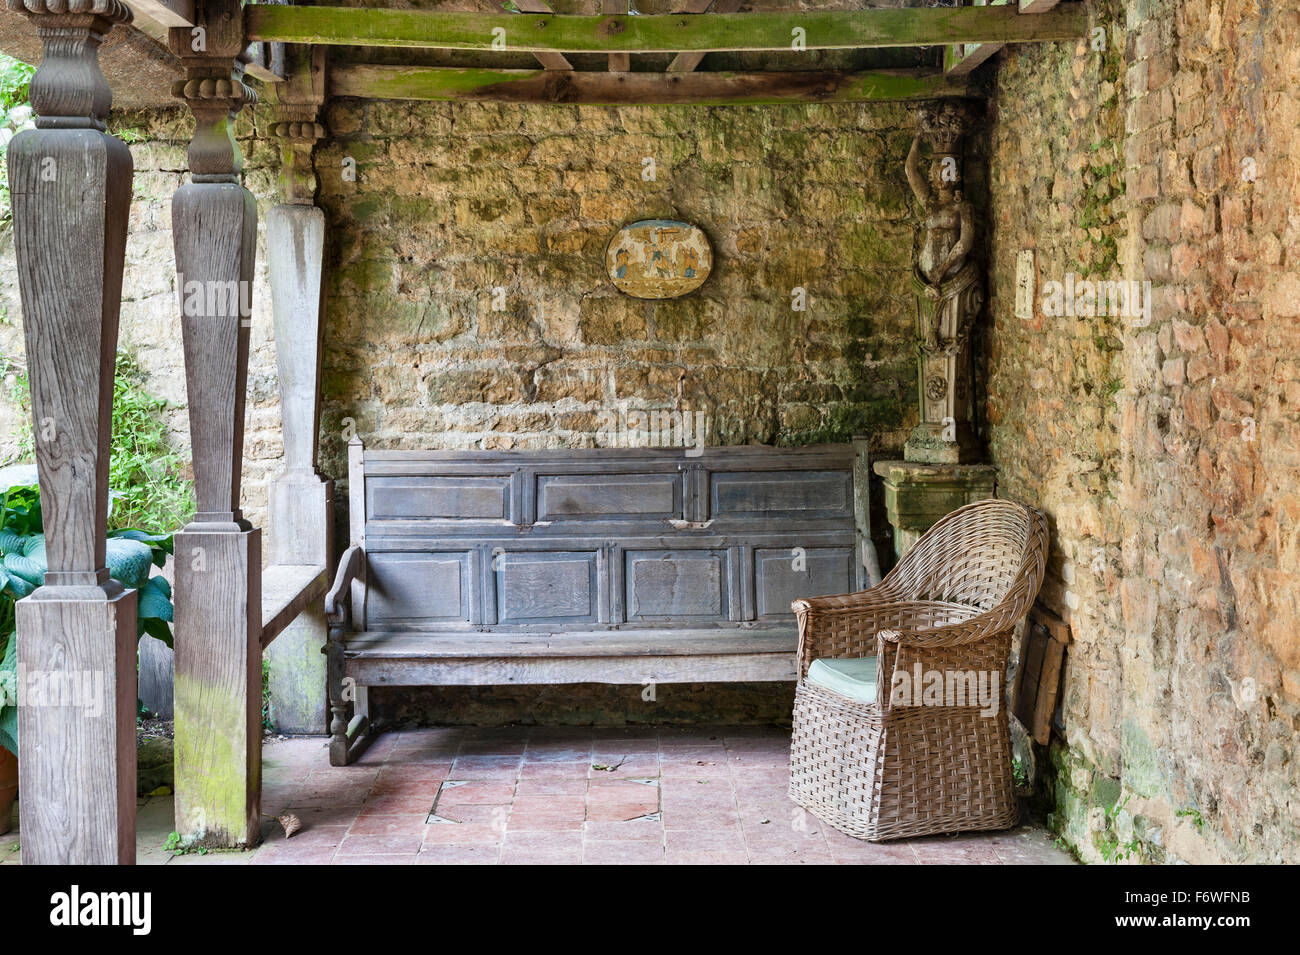 Hidcote Manor Garden, Gloucestershire, UK, made by Lawrence Johnston in the early 20c. The summerhouse - Stock Image